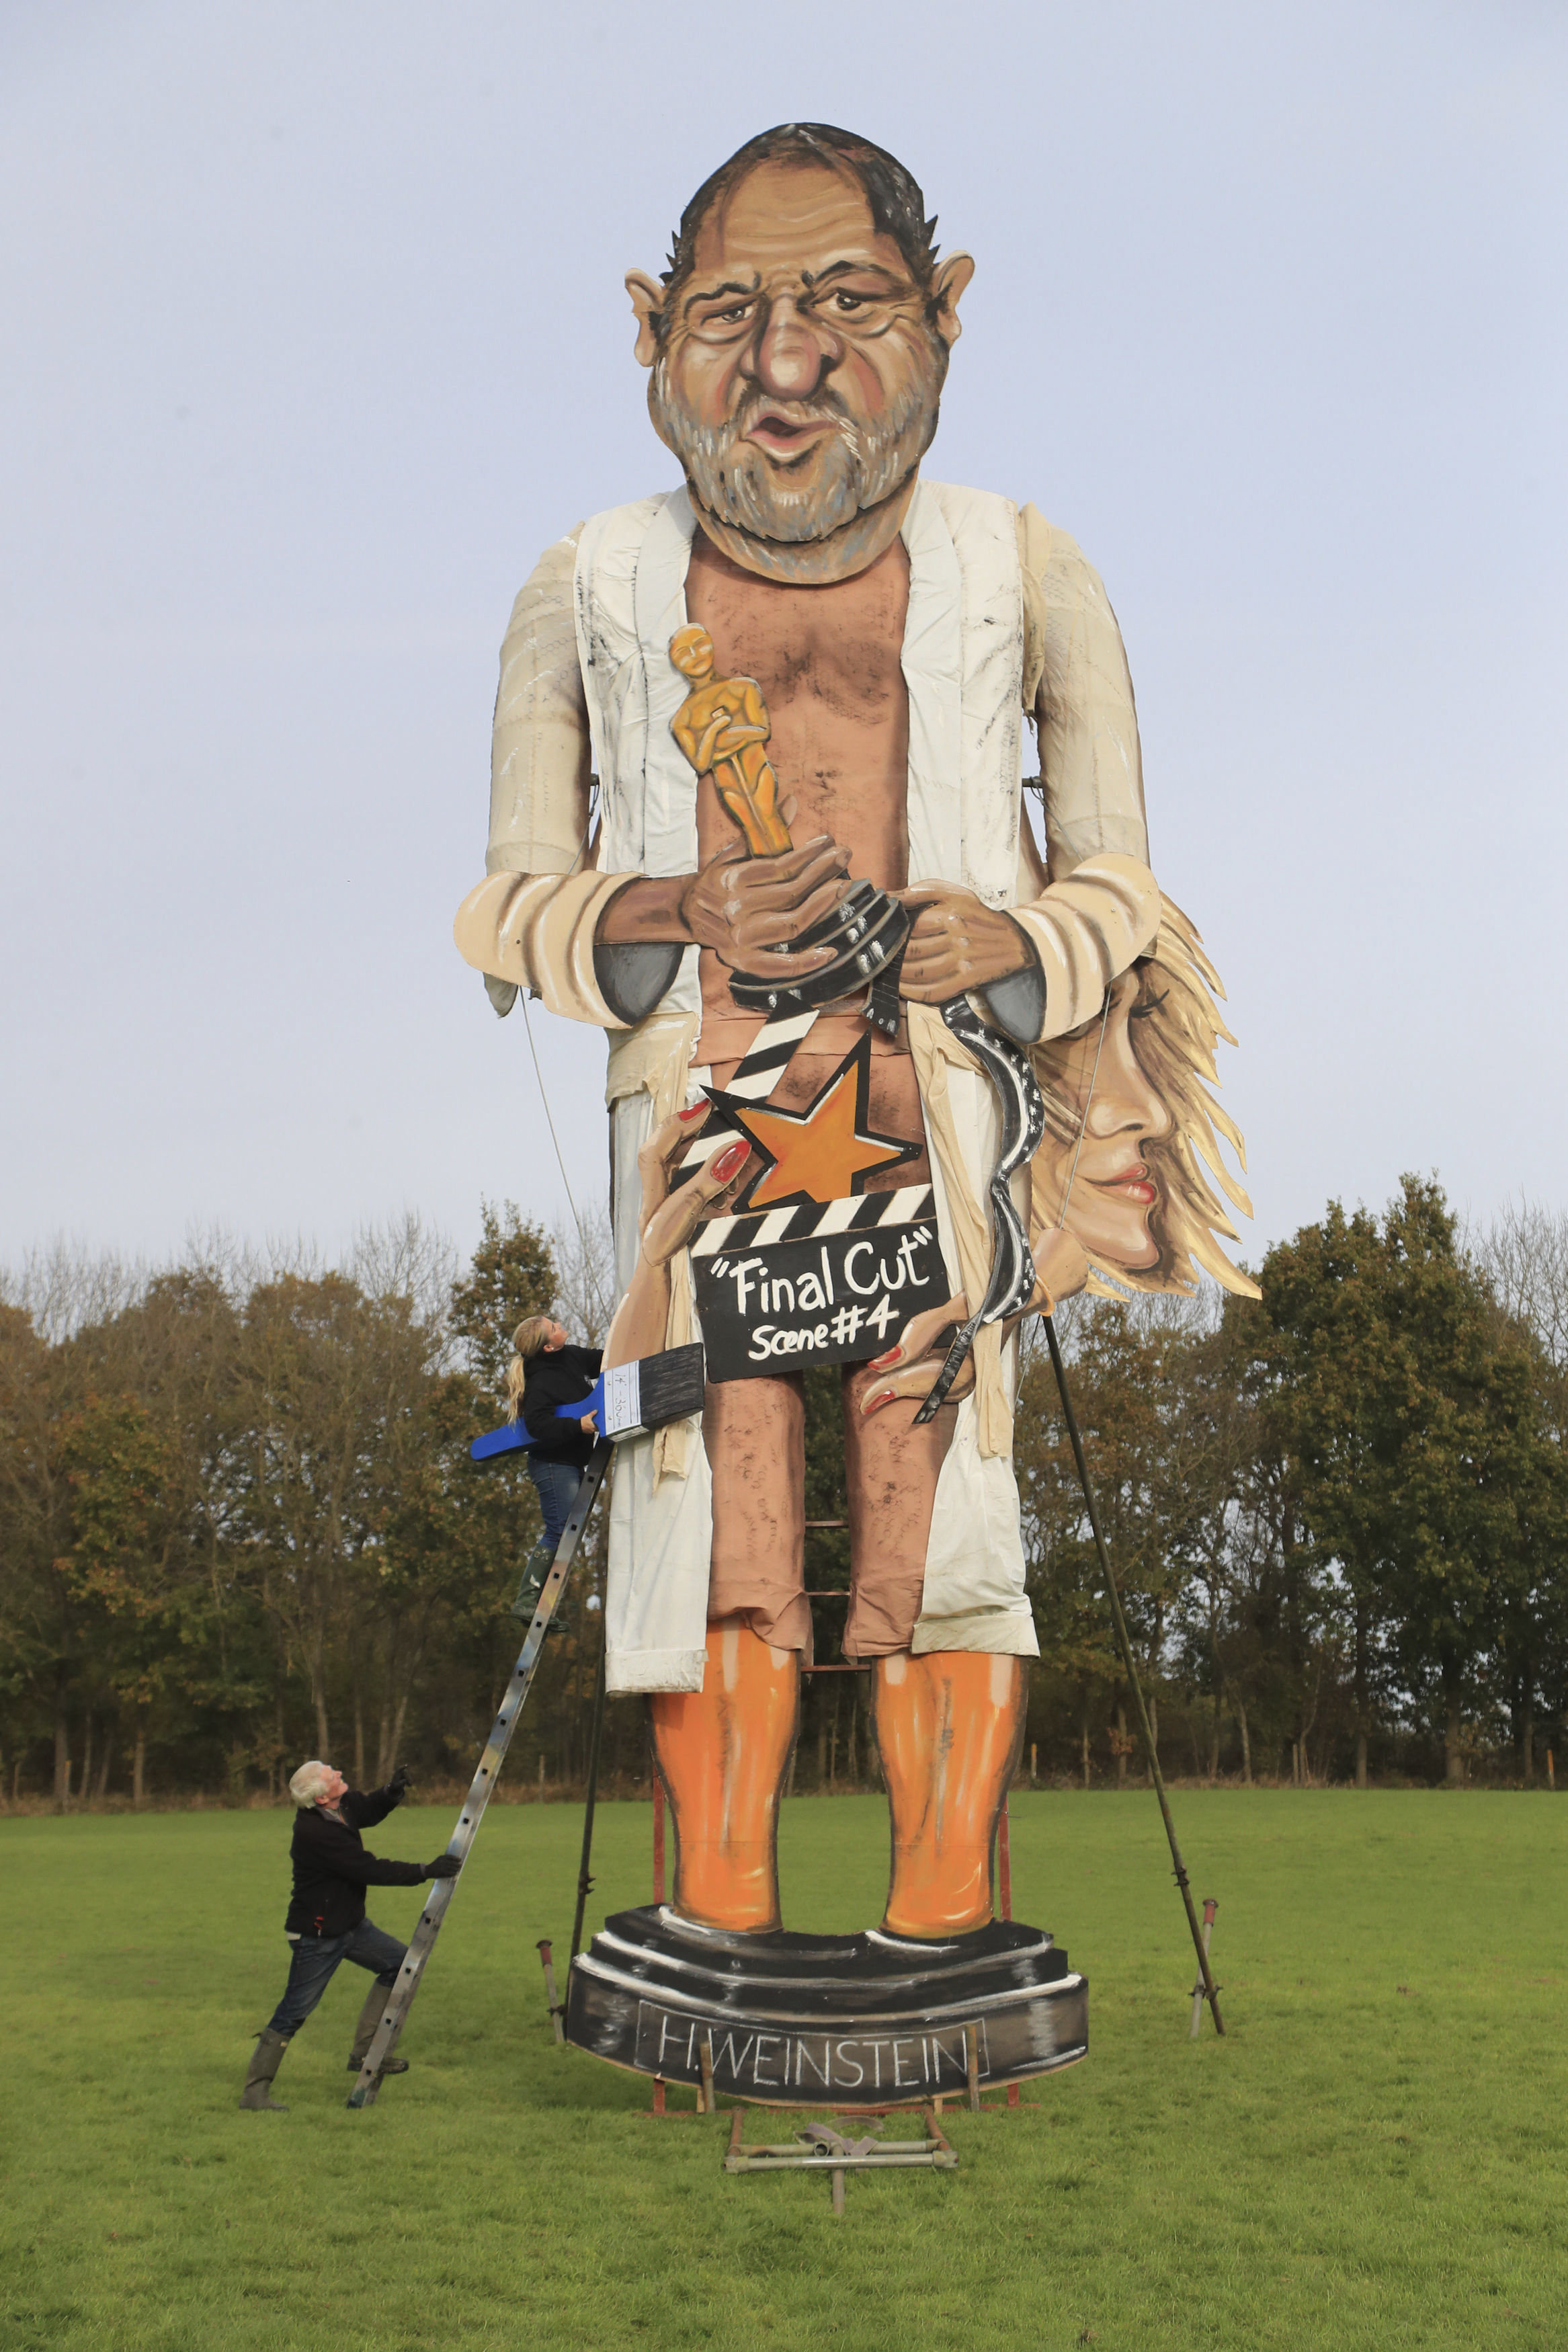 Artists Frank Shepherd and Andrea Deans put the finishing touches to the Edenbridge Bonfire Society effigy, which has been unveiled as Harvey Weinstein, for Bonfire Night in Edenbridge, England, Wednesday, Nov. 1, 2017